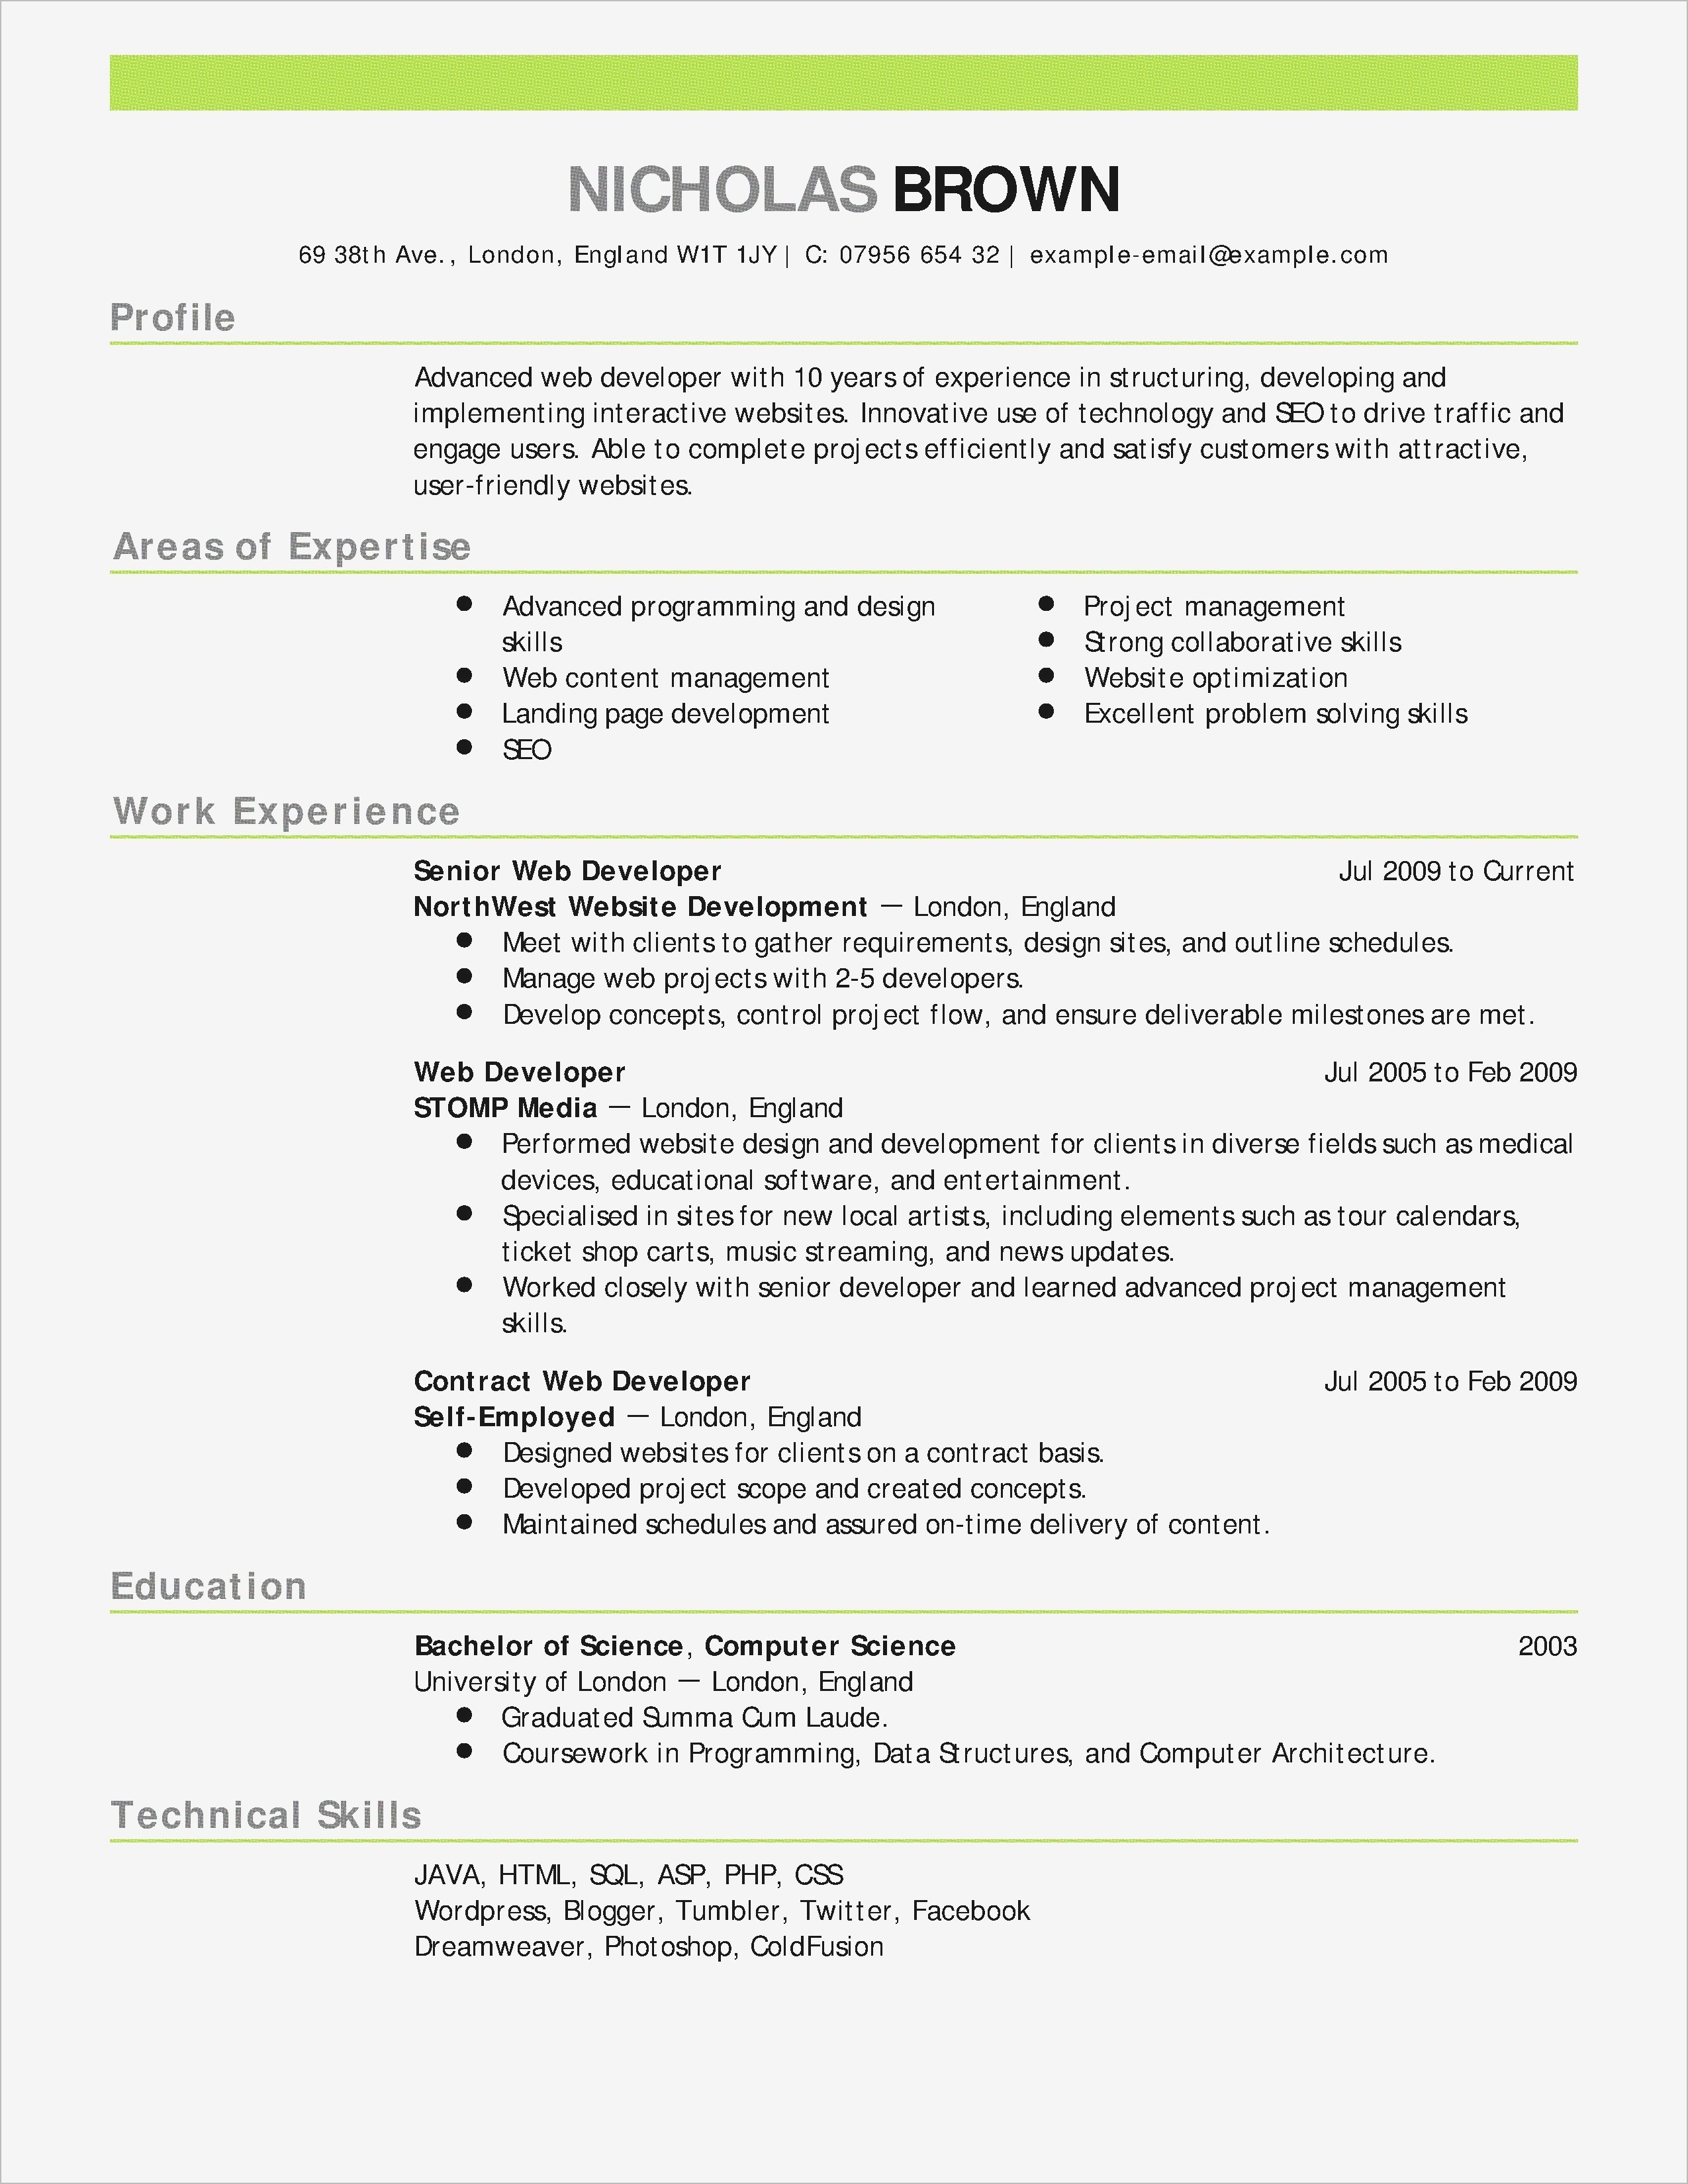 Free Ms Word Resume Templates - Elegant Free Resume Template for Word